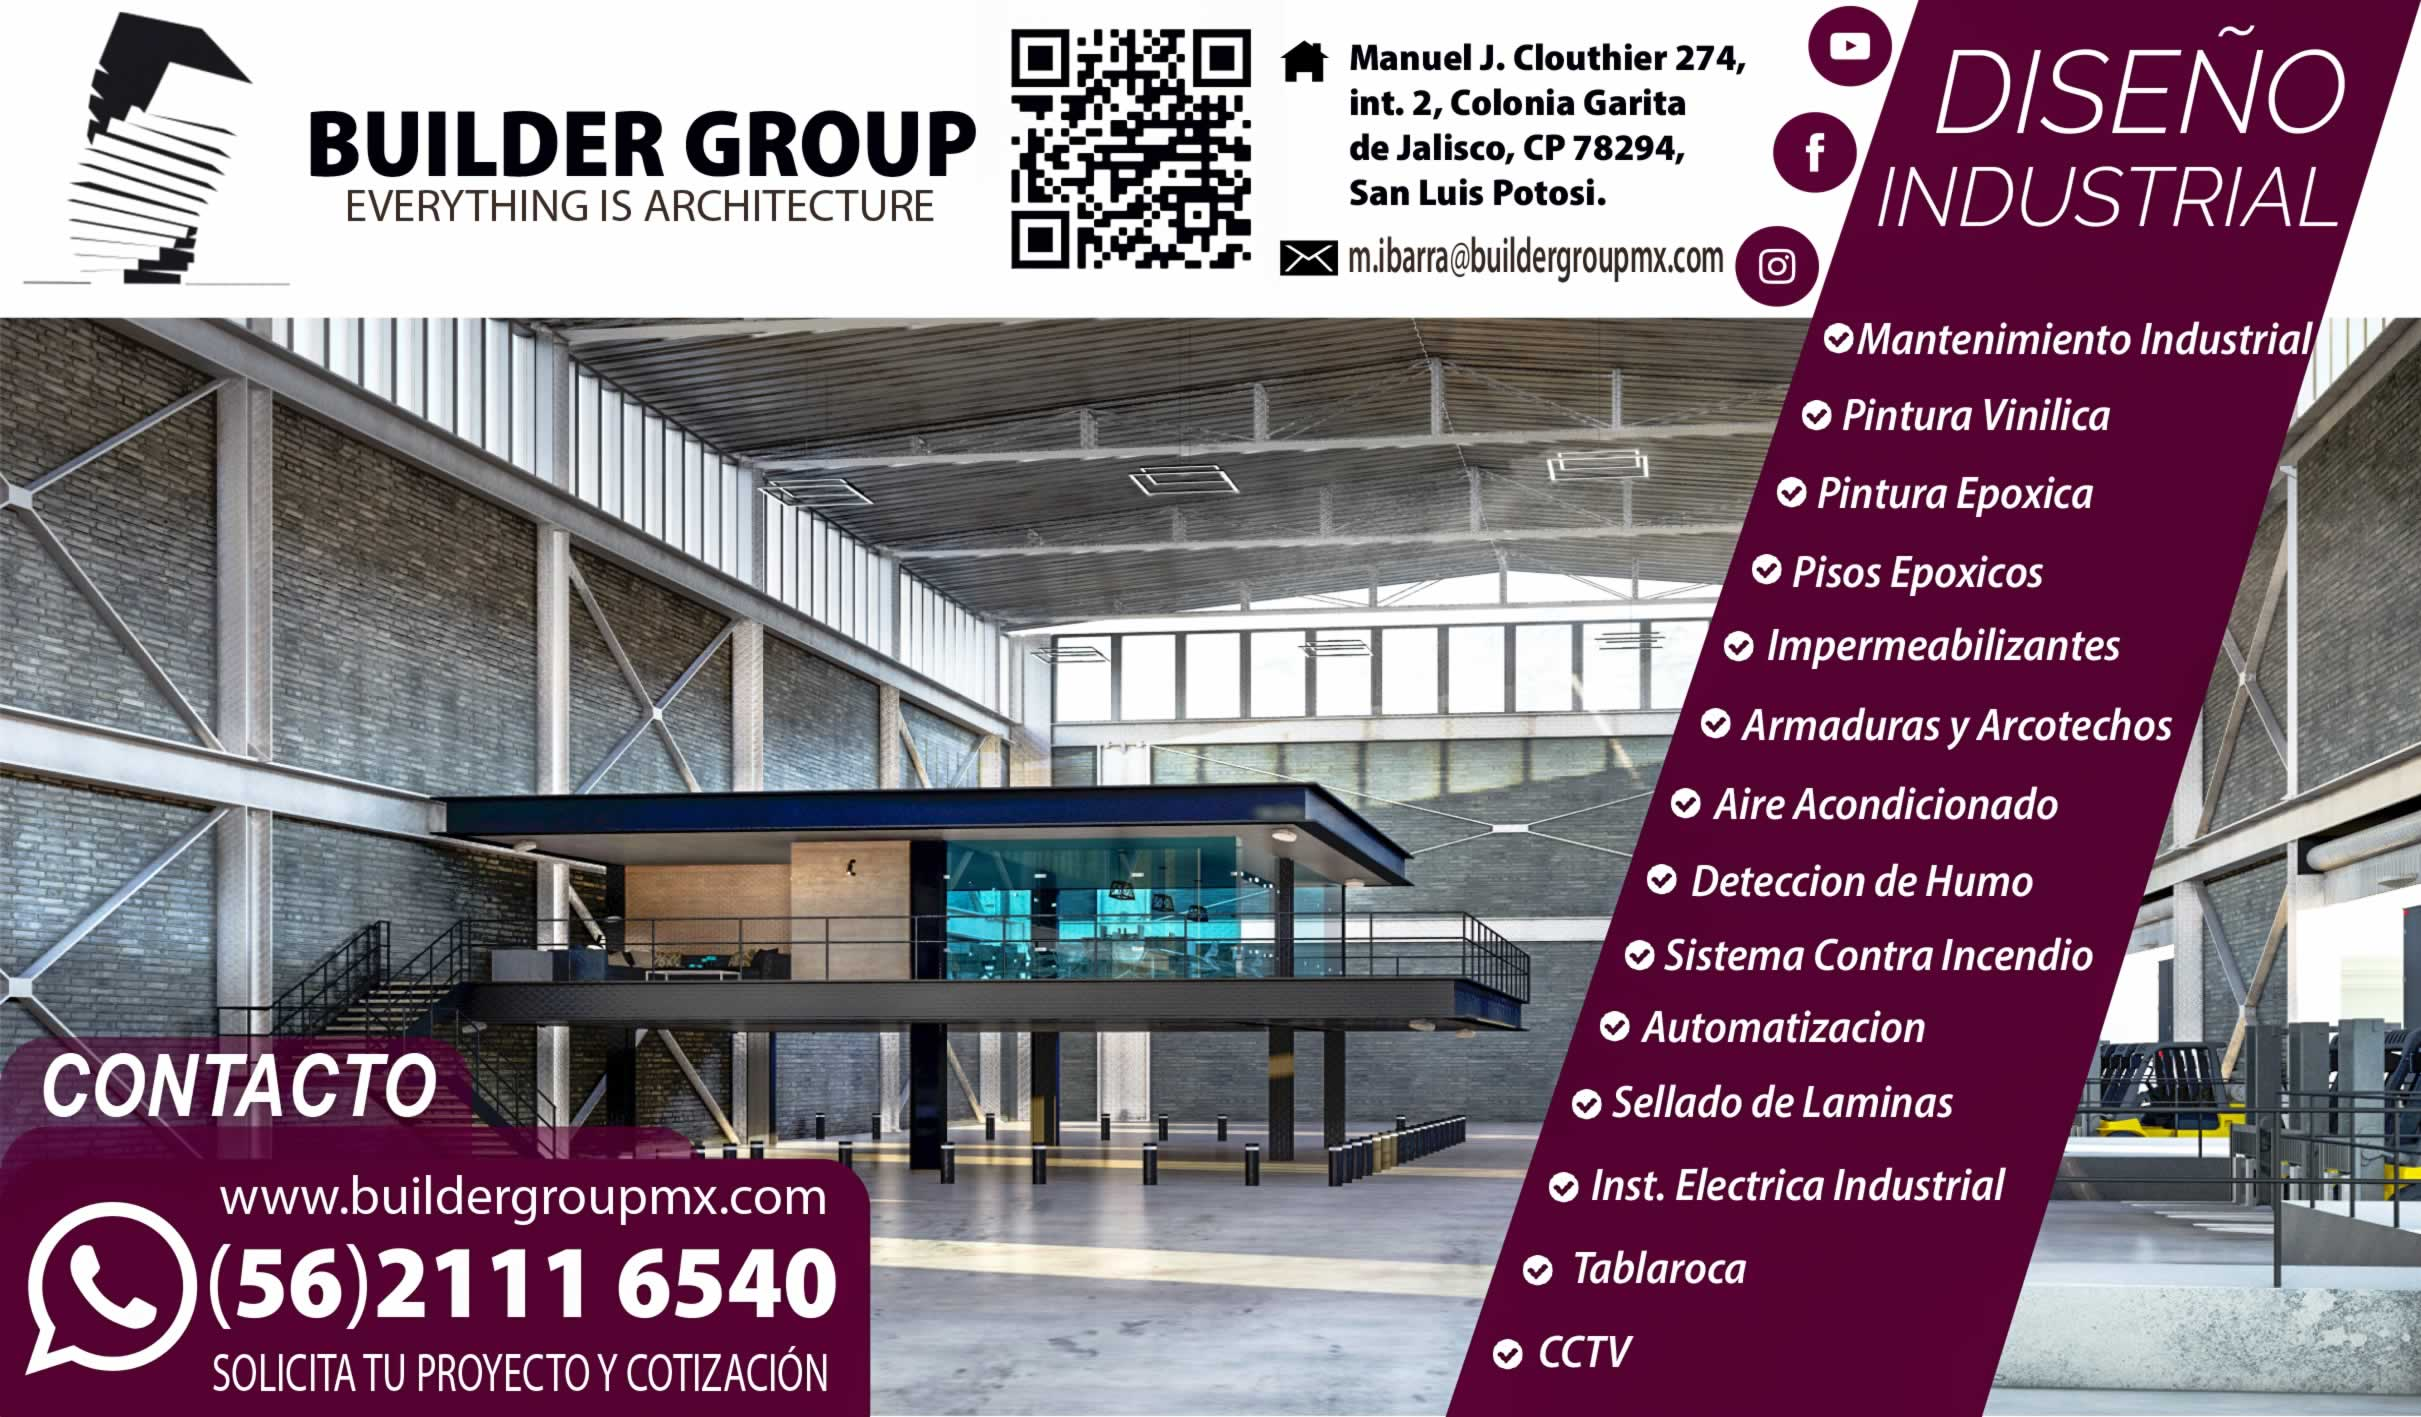 builder-group-mantenimiento-industrial-plan-de-marketing-muy-interesante-revista-revista-contacto-industrial